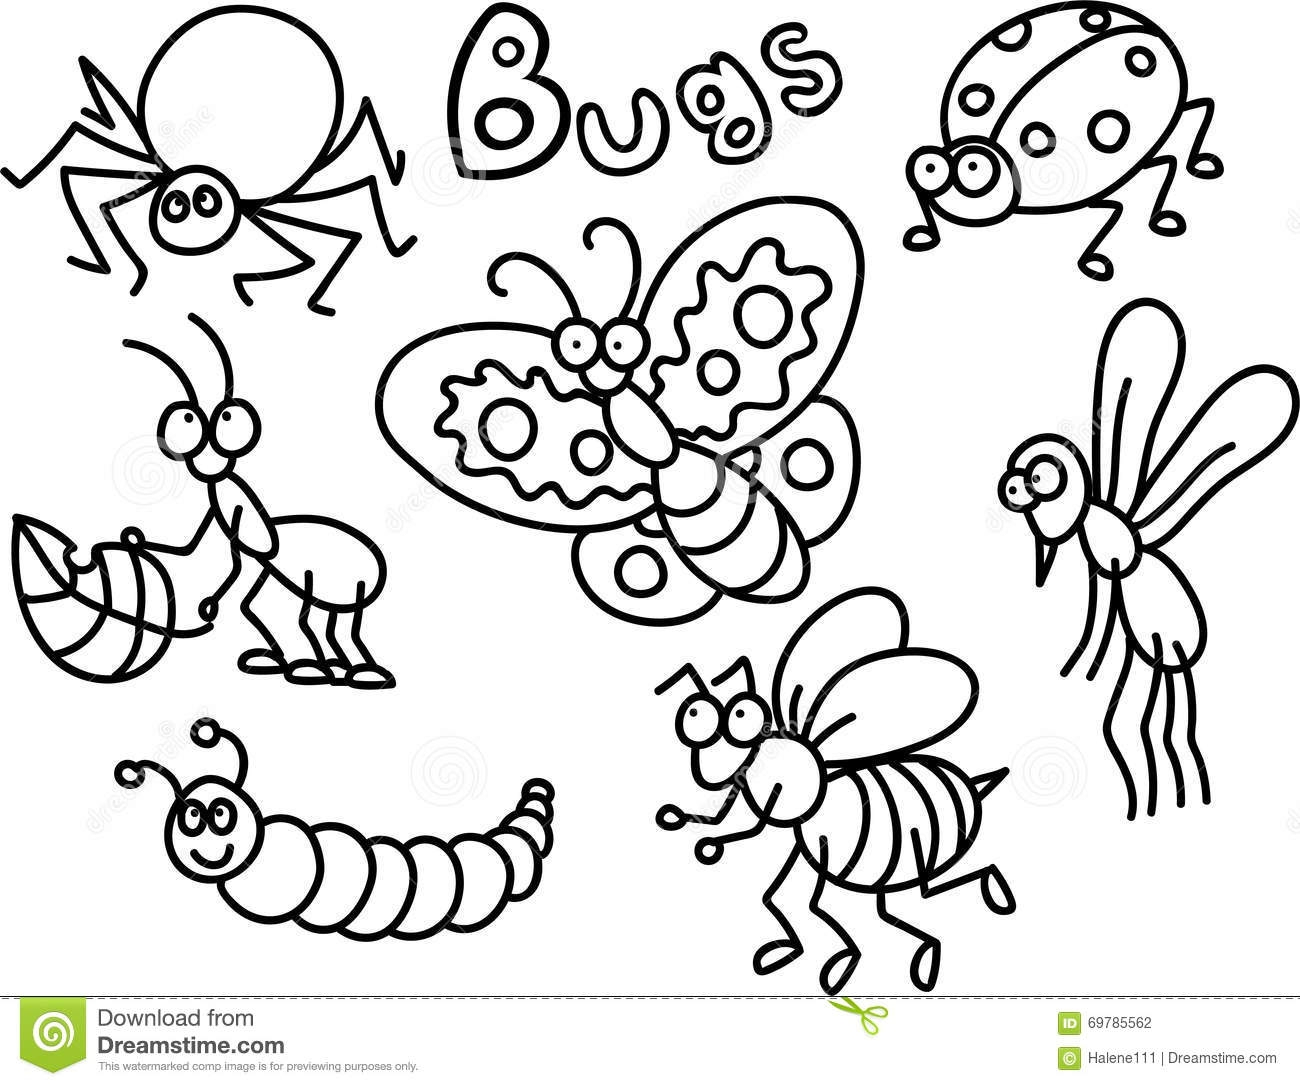 ant coloring page - stock illustration bugs coloring page children lot cute cartoon style image